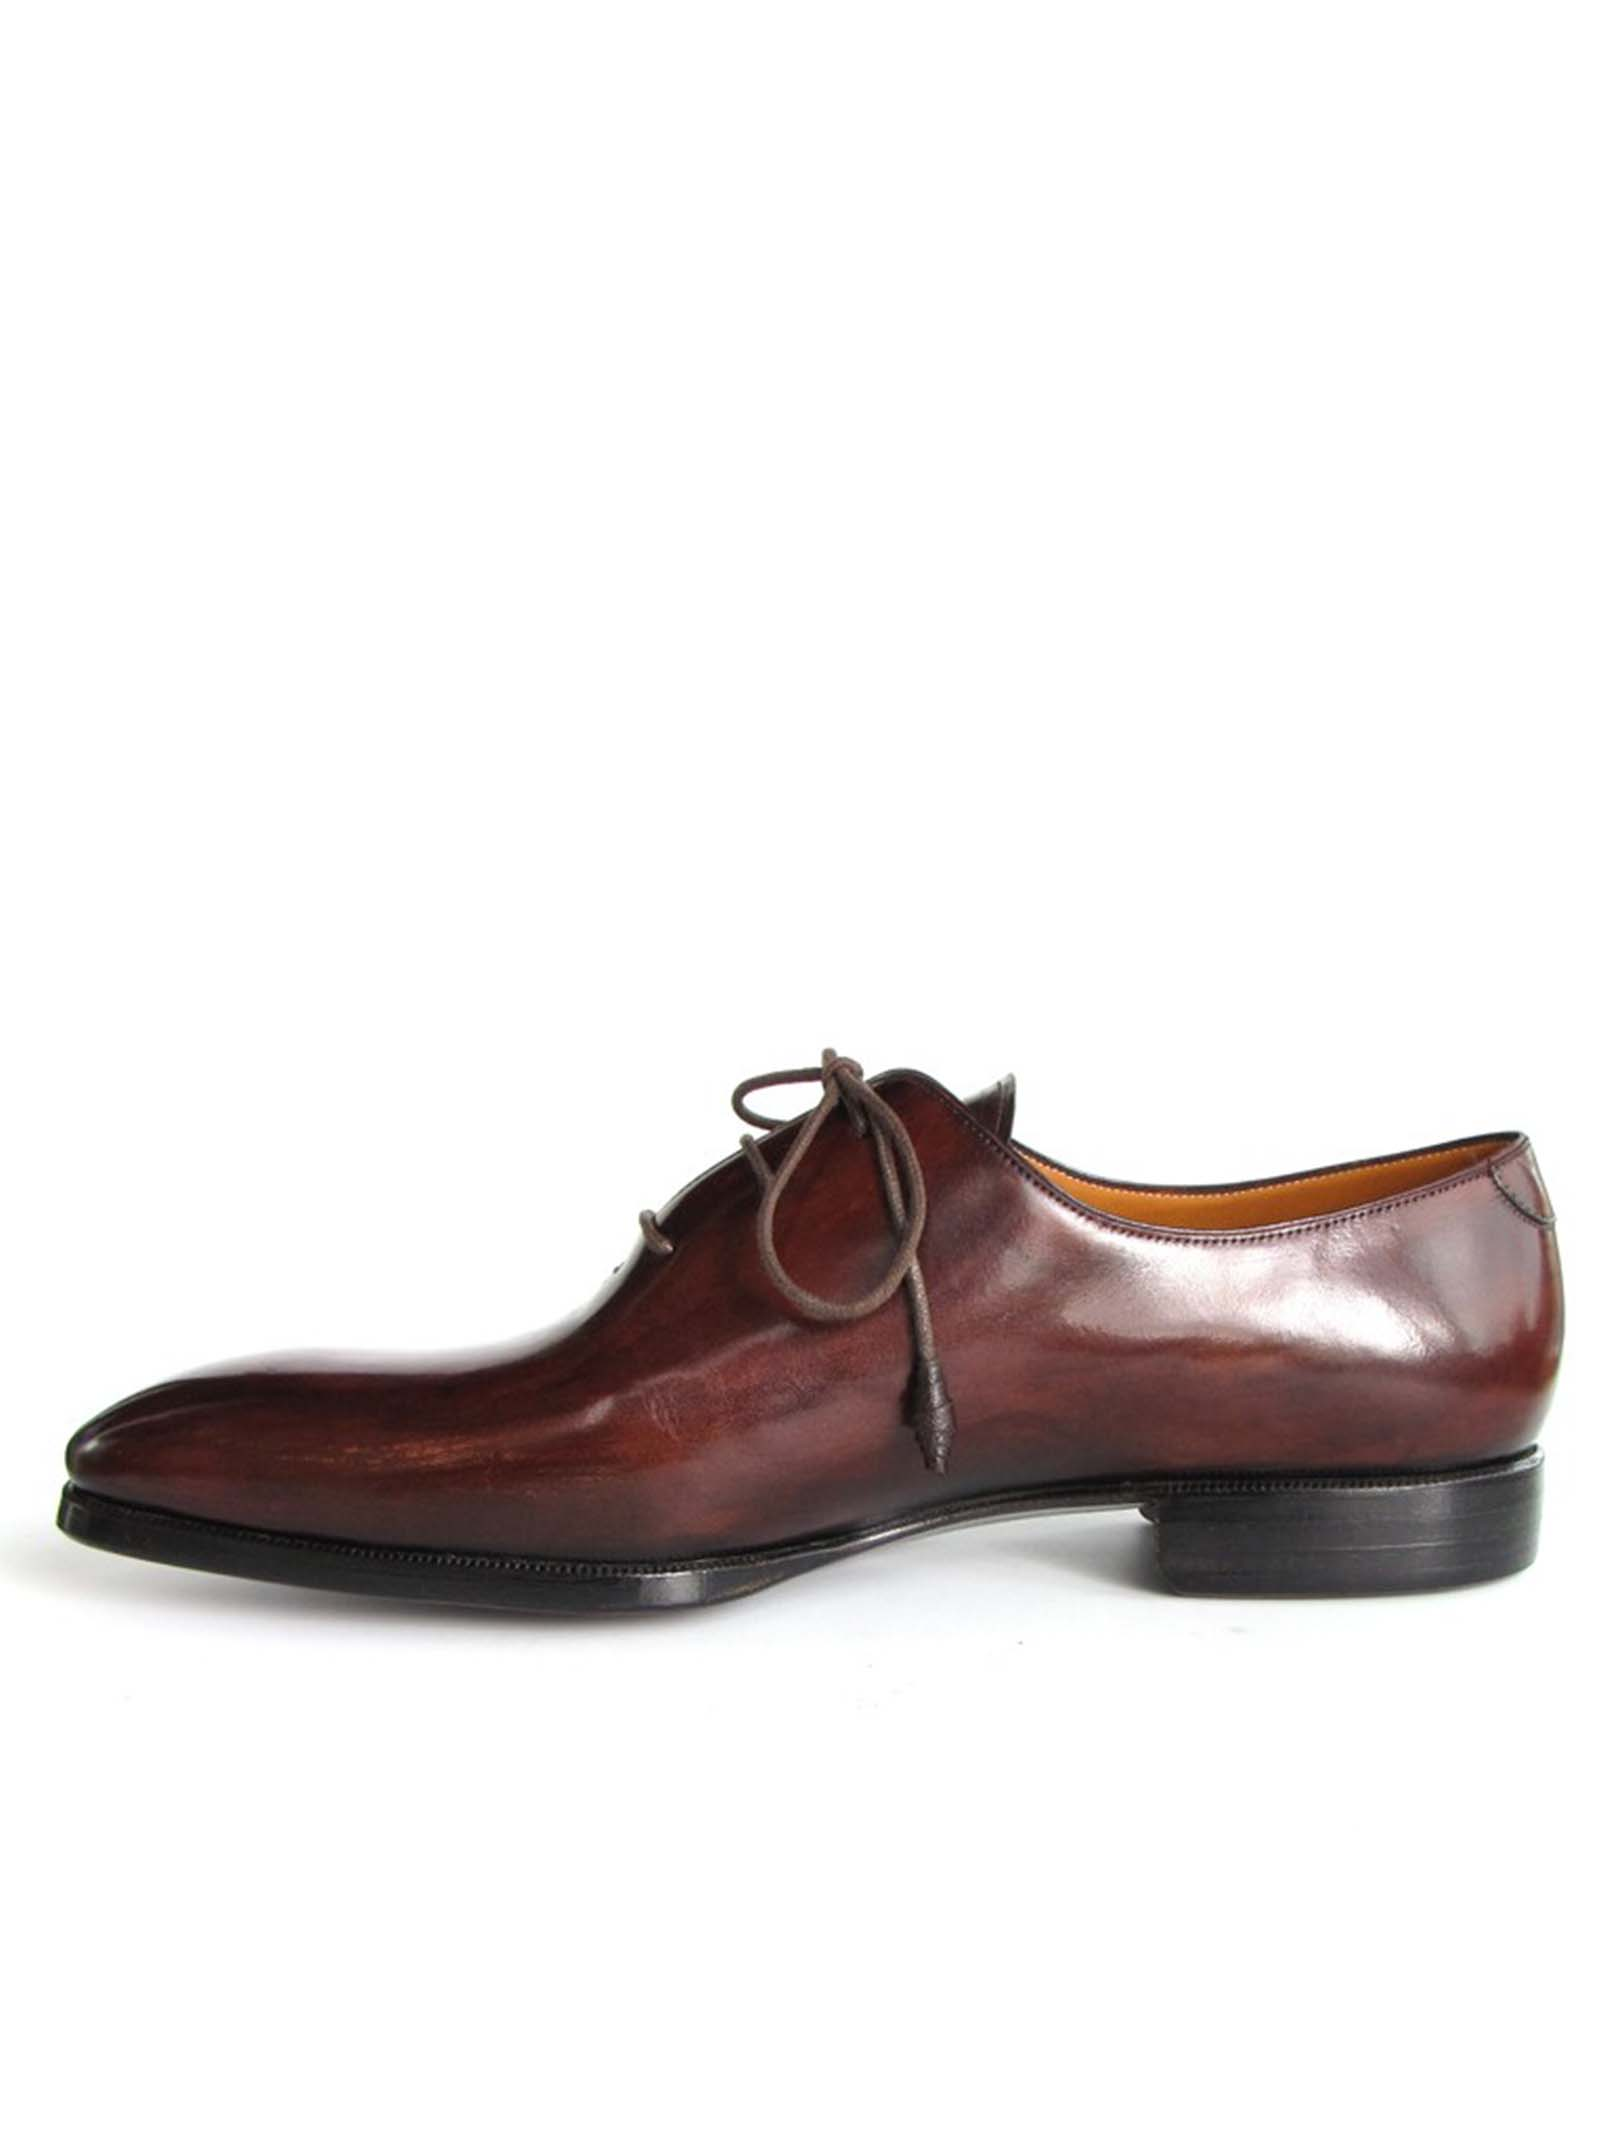 Oxford Mens Shoes By Rompers